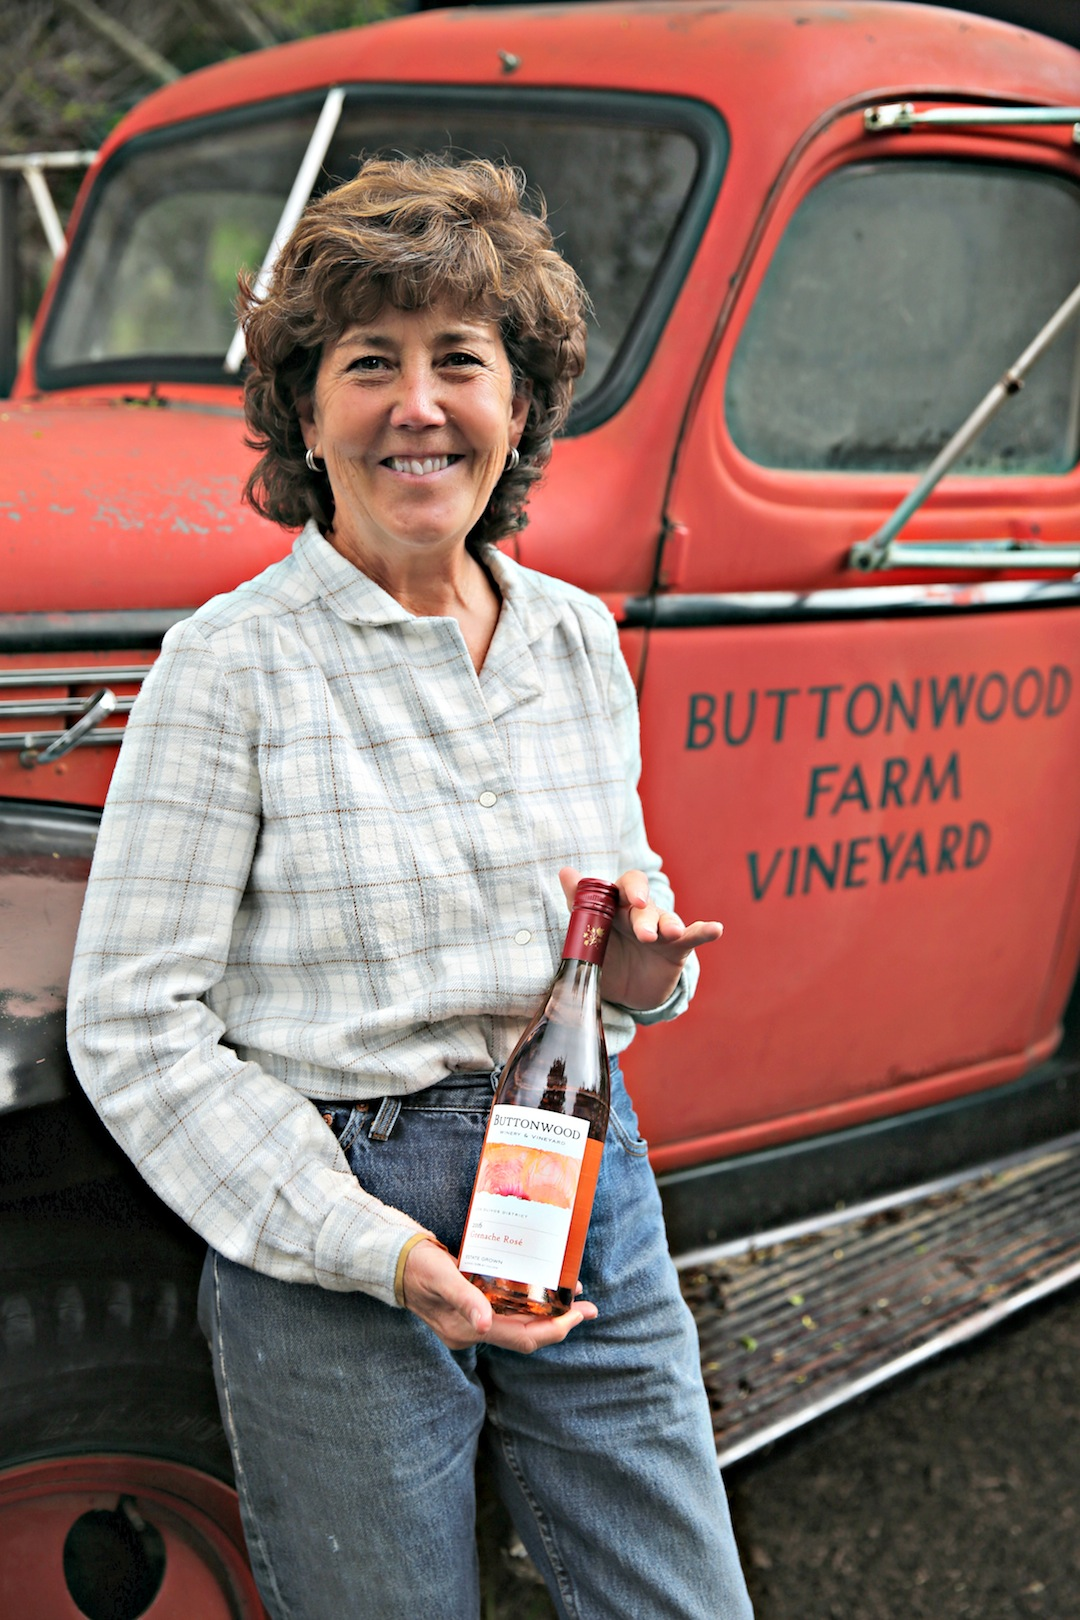 Tenley Fohl Photography/ Karen Steinwachs, general manager and winemaker at Buttonwood Farm Winery & Vineyards and winemaker/owner of Seagrape Wine Co., is organizing the March 8 event at K'Syrah Catering in Solvang.